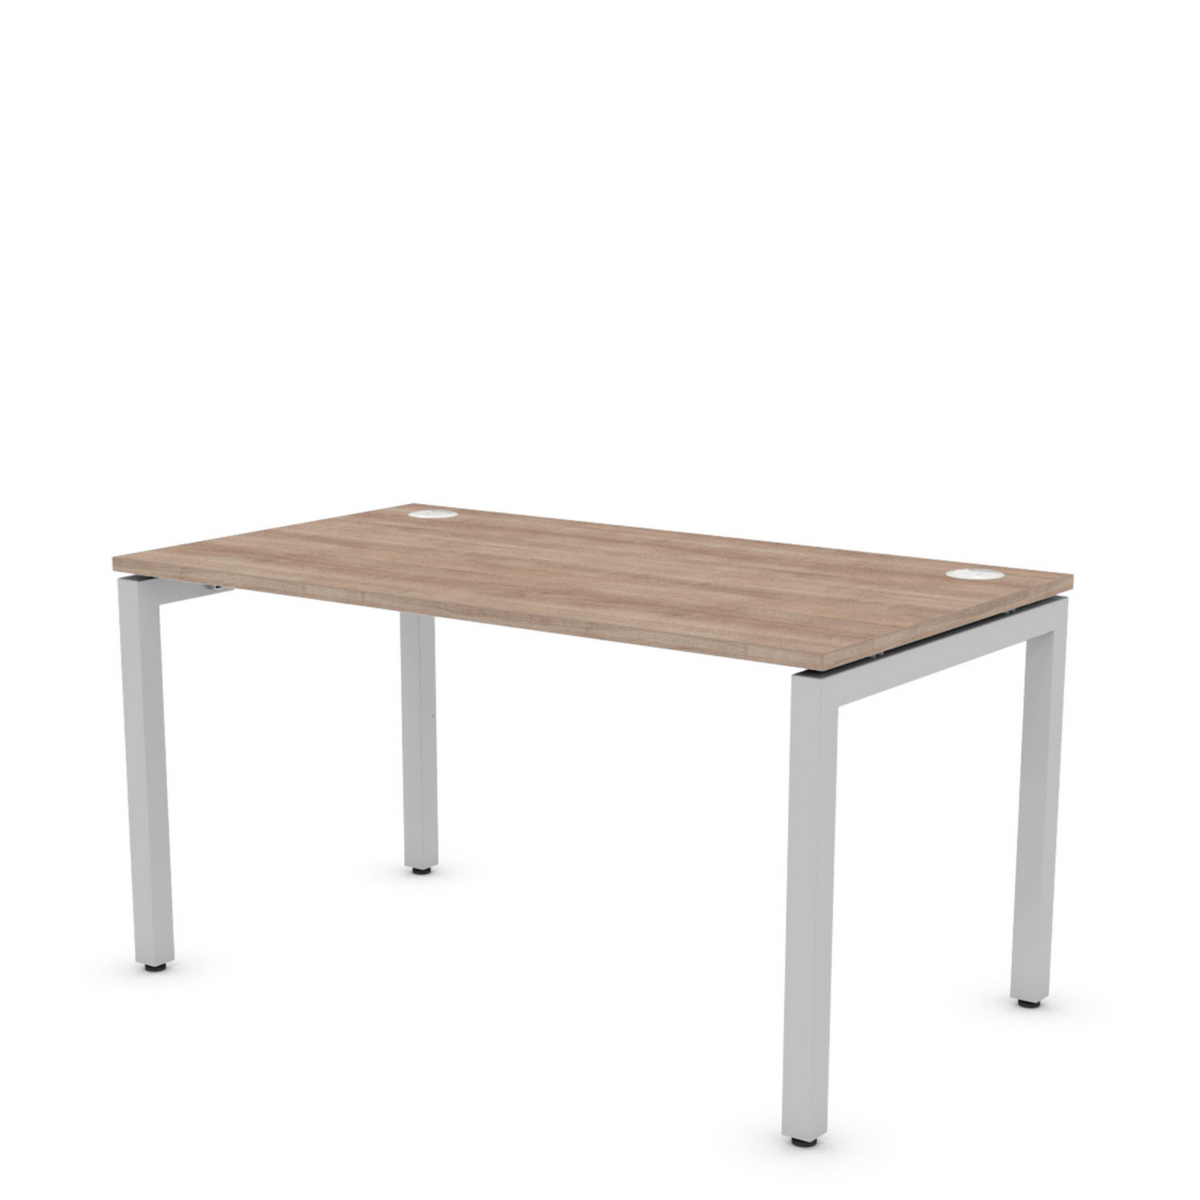 Rectangular 1400mm Desk